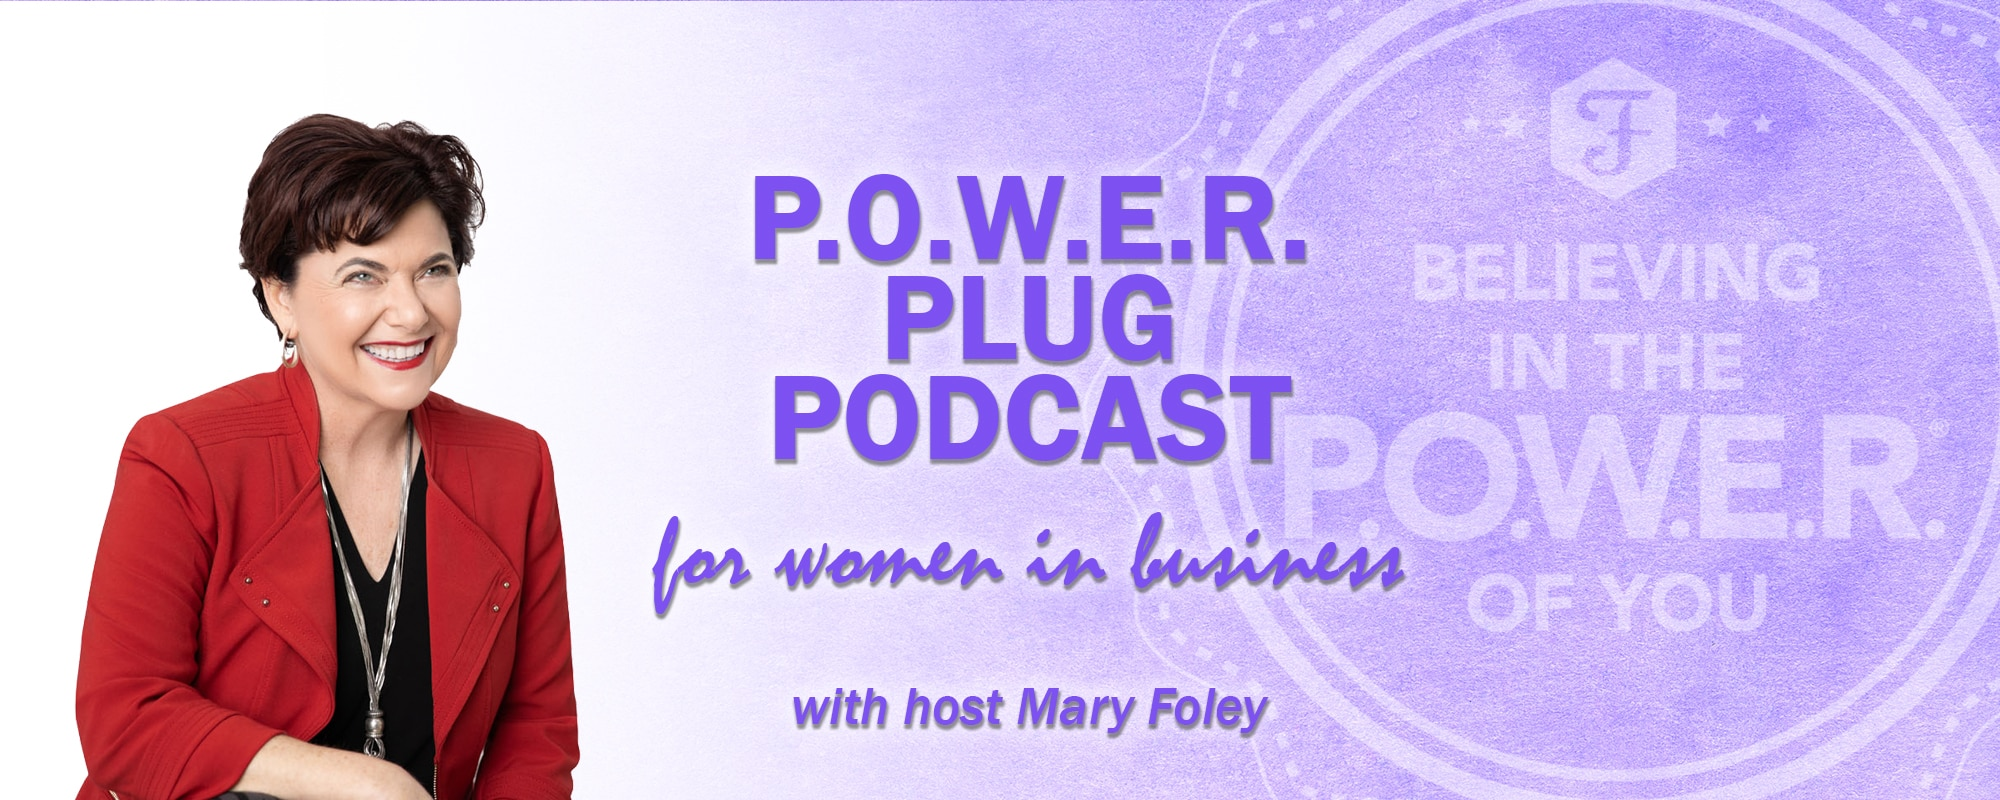 POWER Plug Podcast Banner